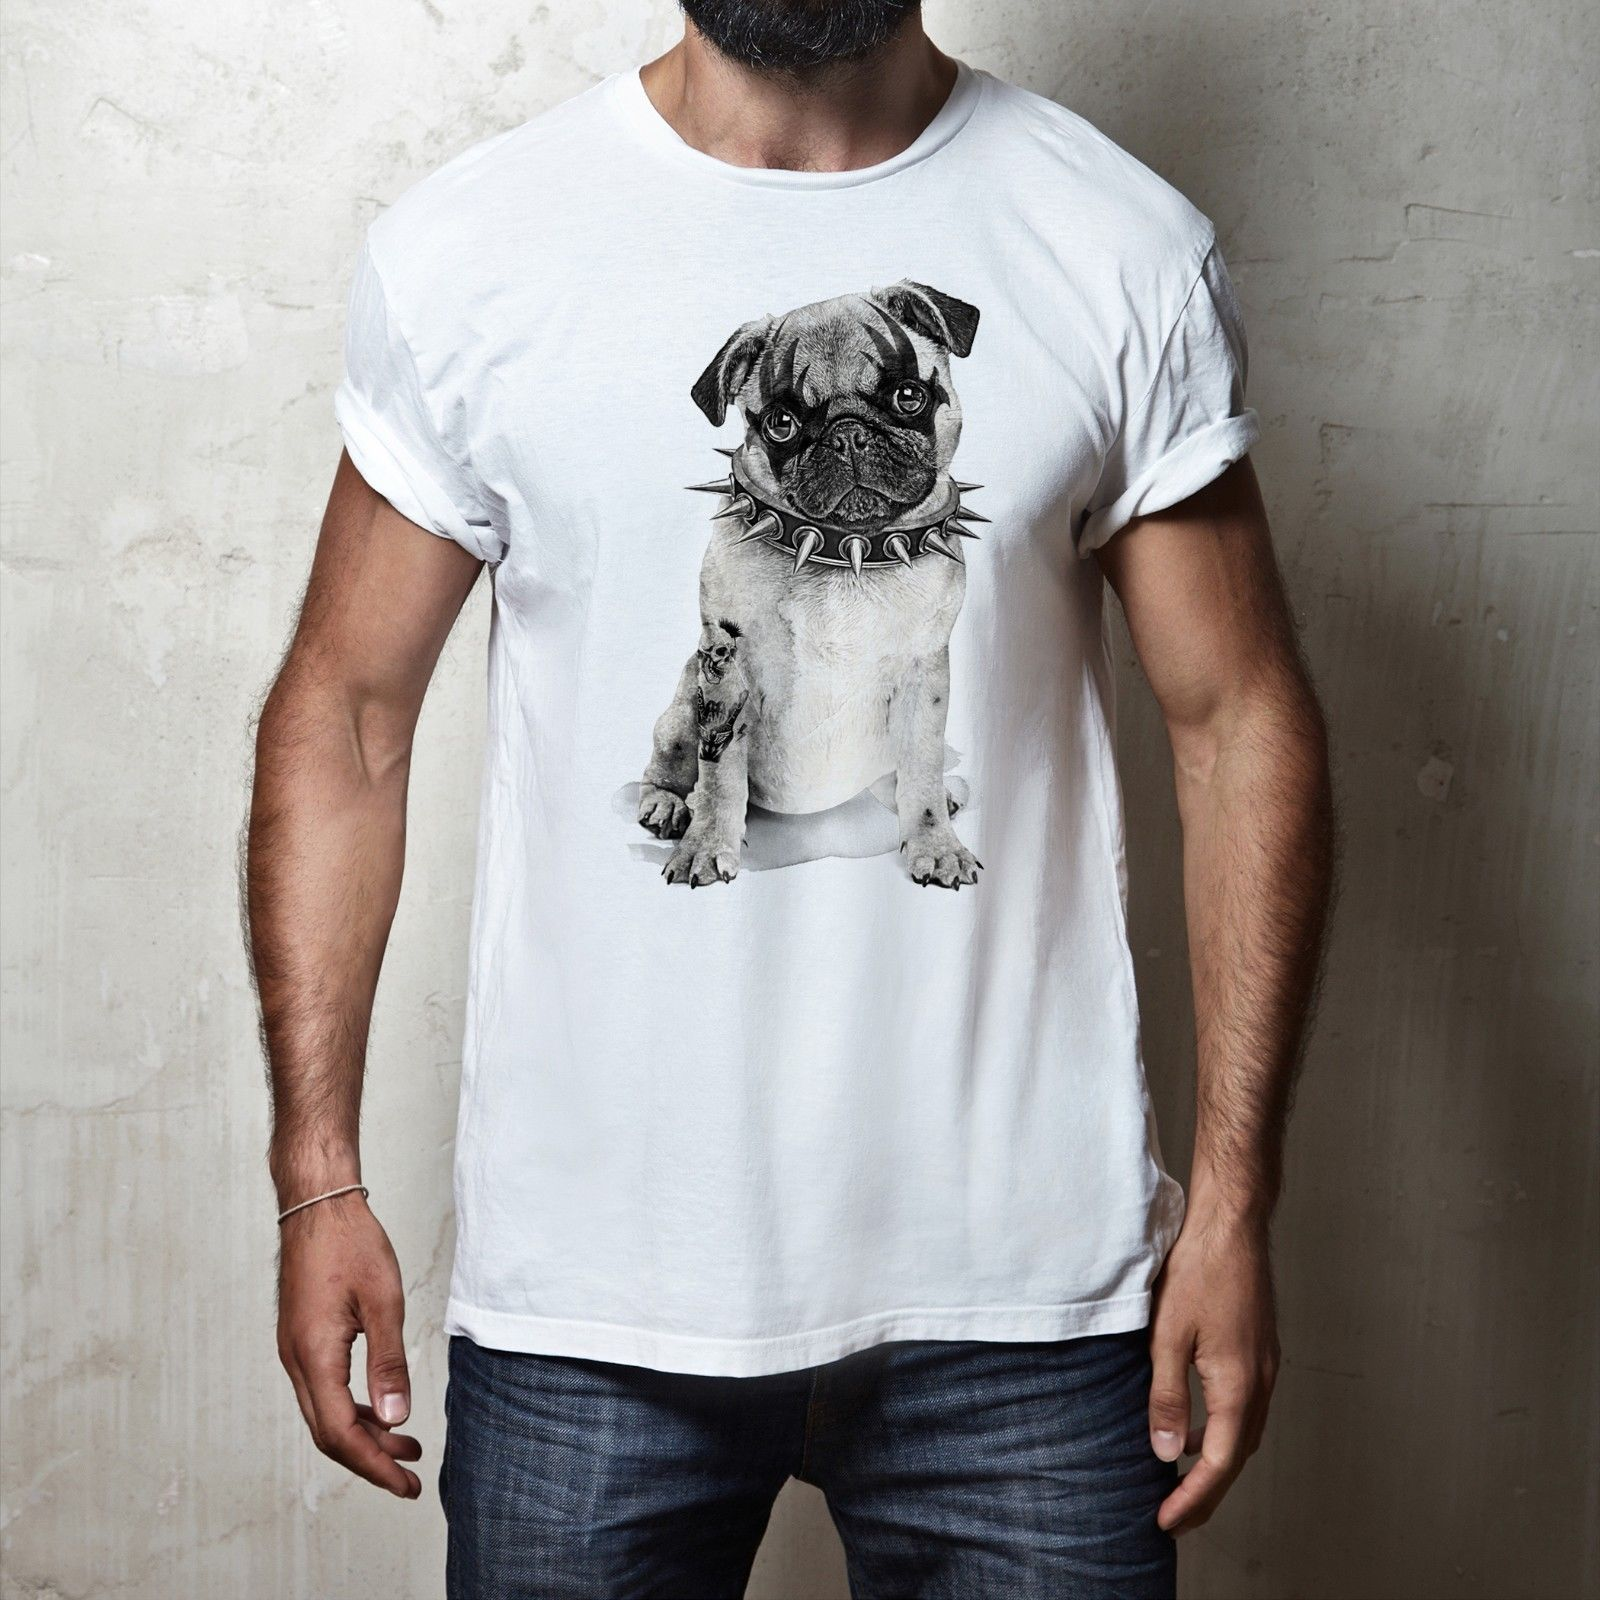 FUNNY HEAVY METAL PUG CUTE PET ANIMAL DOG MENS amp WOMENS FIT T SHIRT TEE TOP New T Shirts Funny Tops Tee New Unisex Funny Tops in T Shirts from Men 39 s Clothing